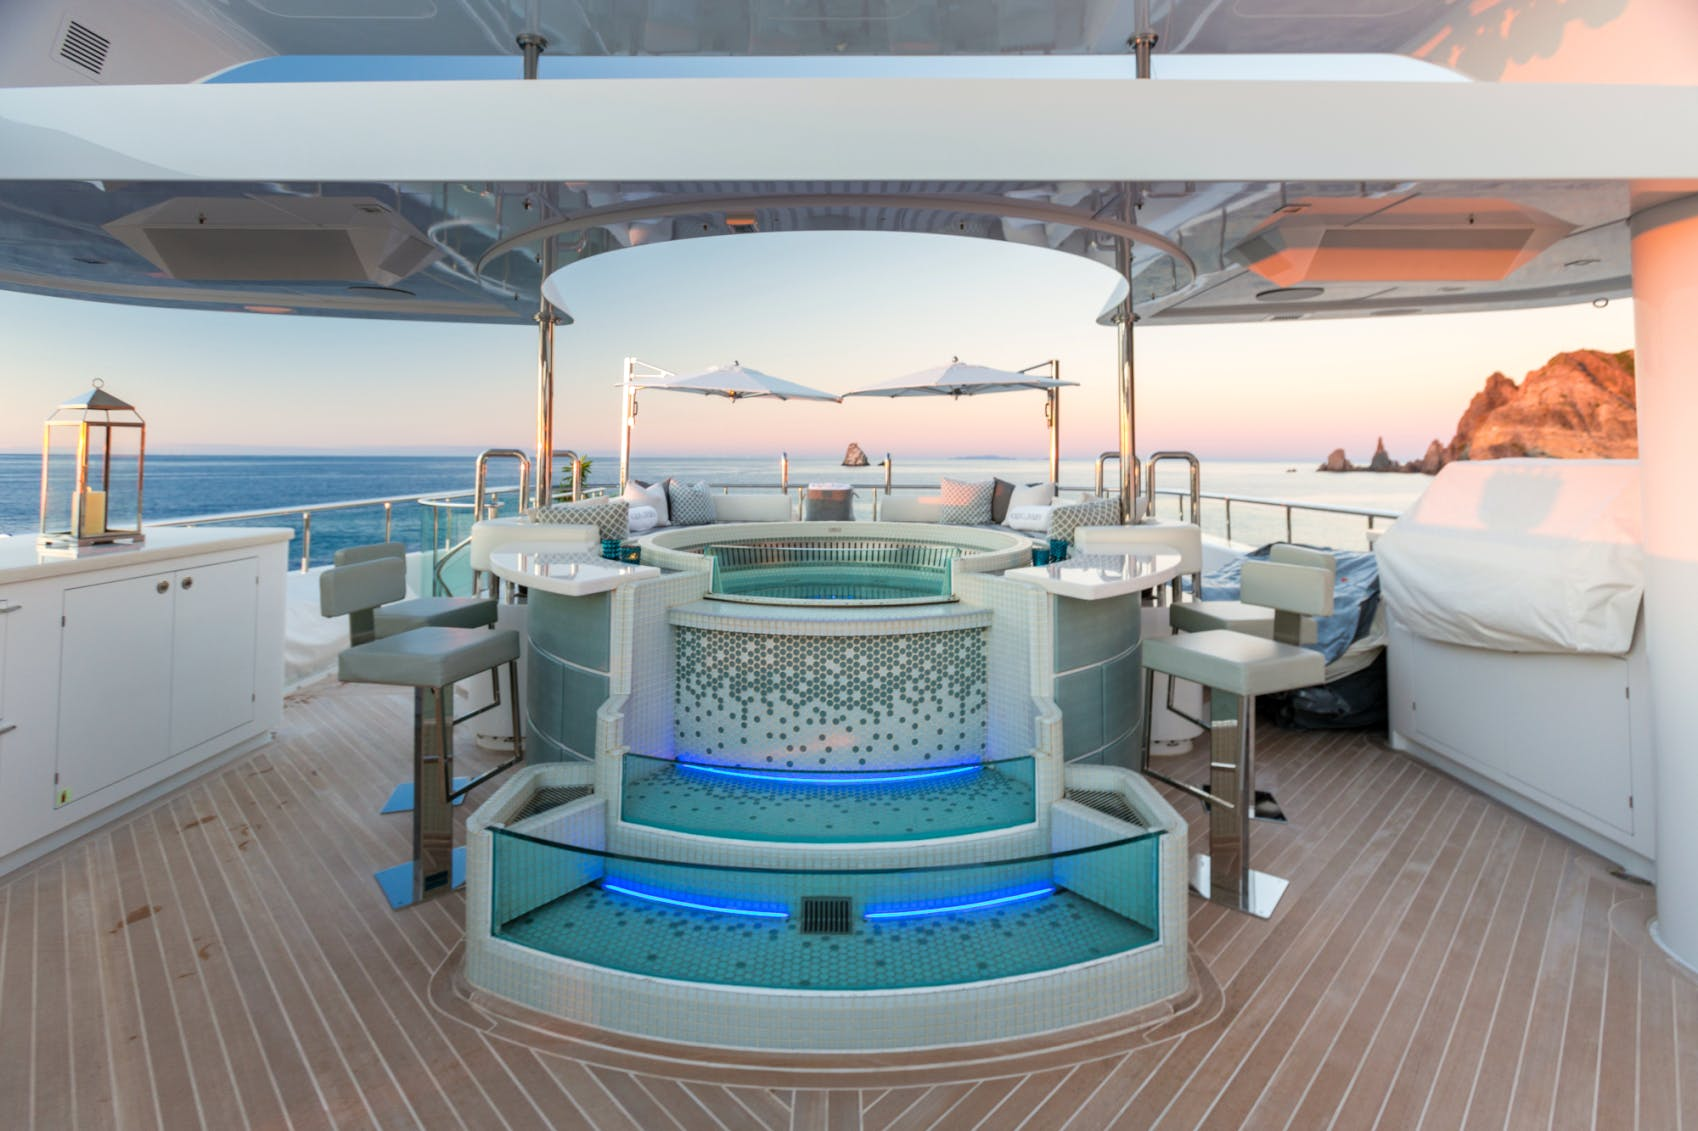 KING BABY Jacuzzi during sunset